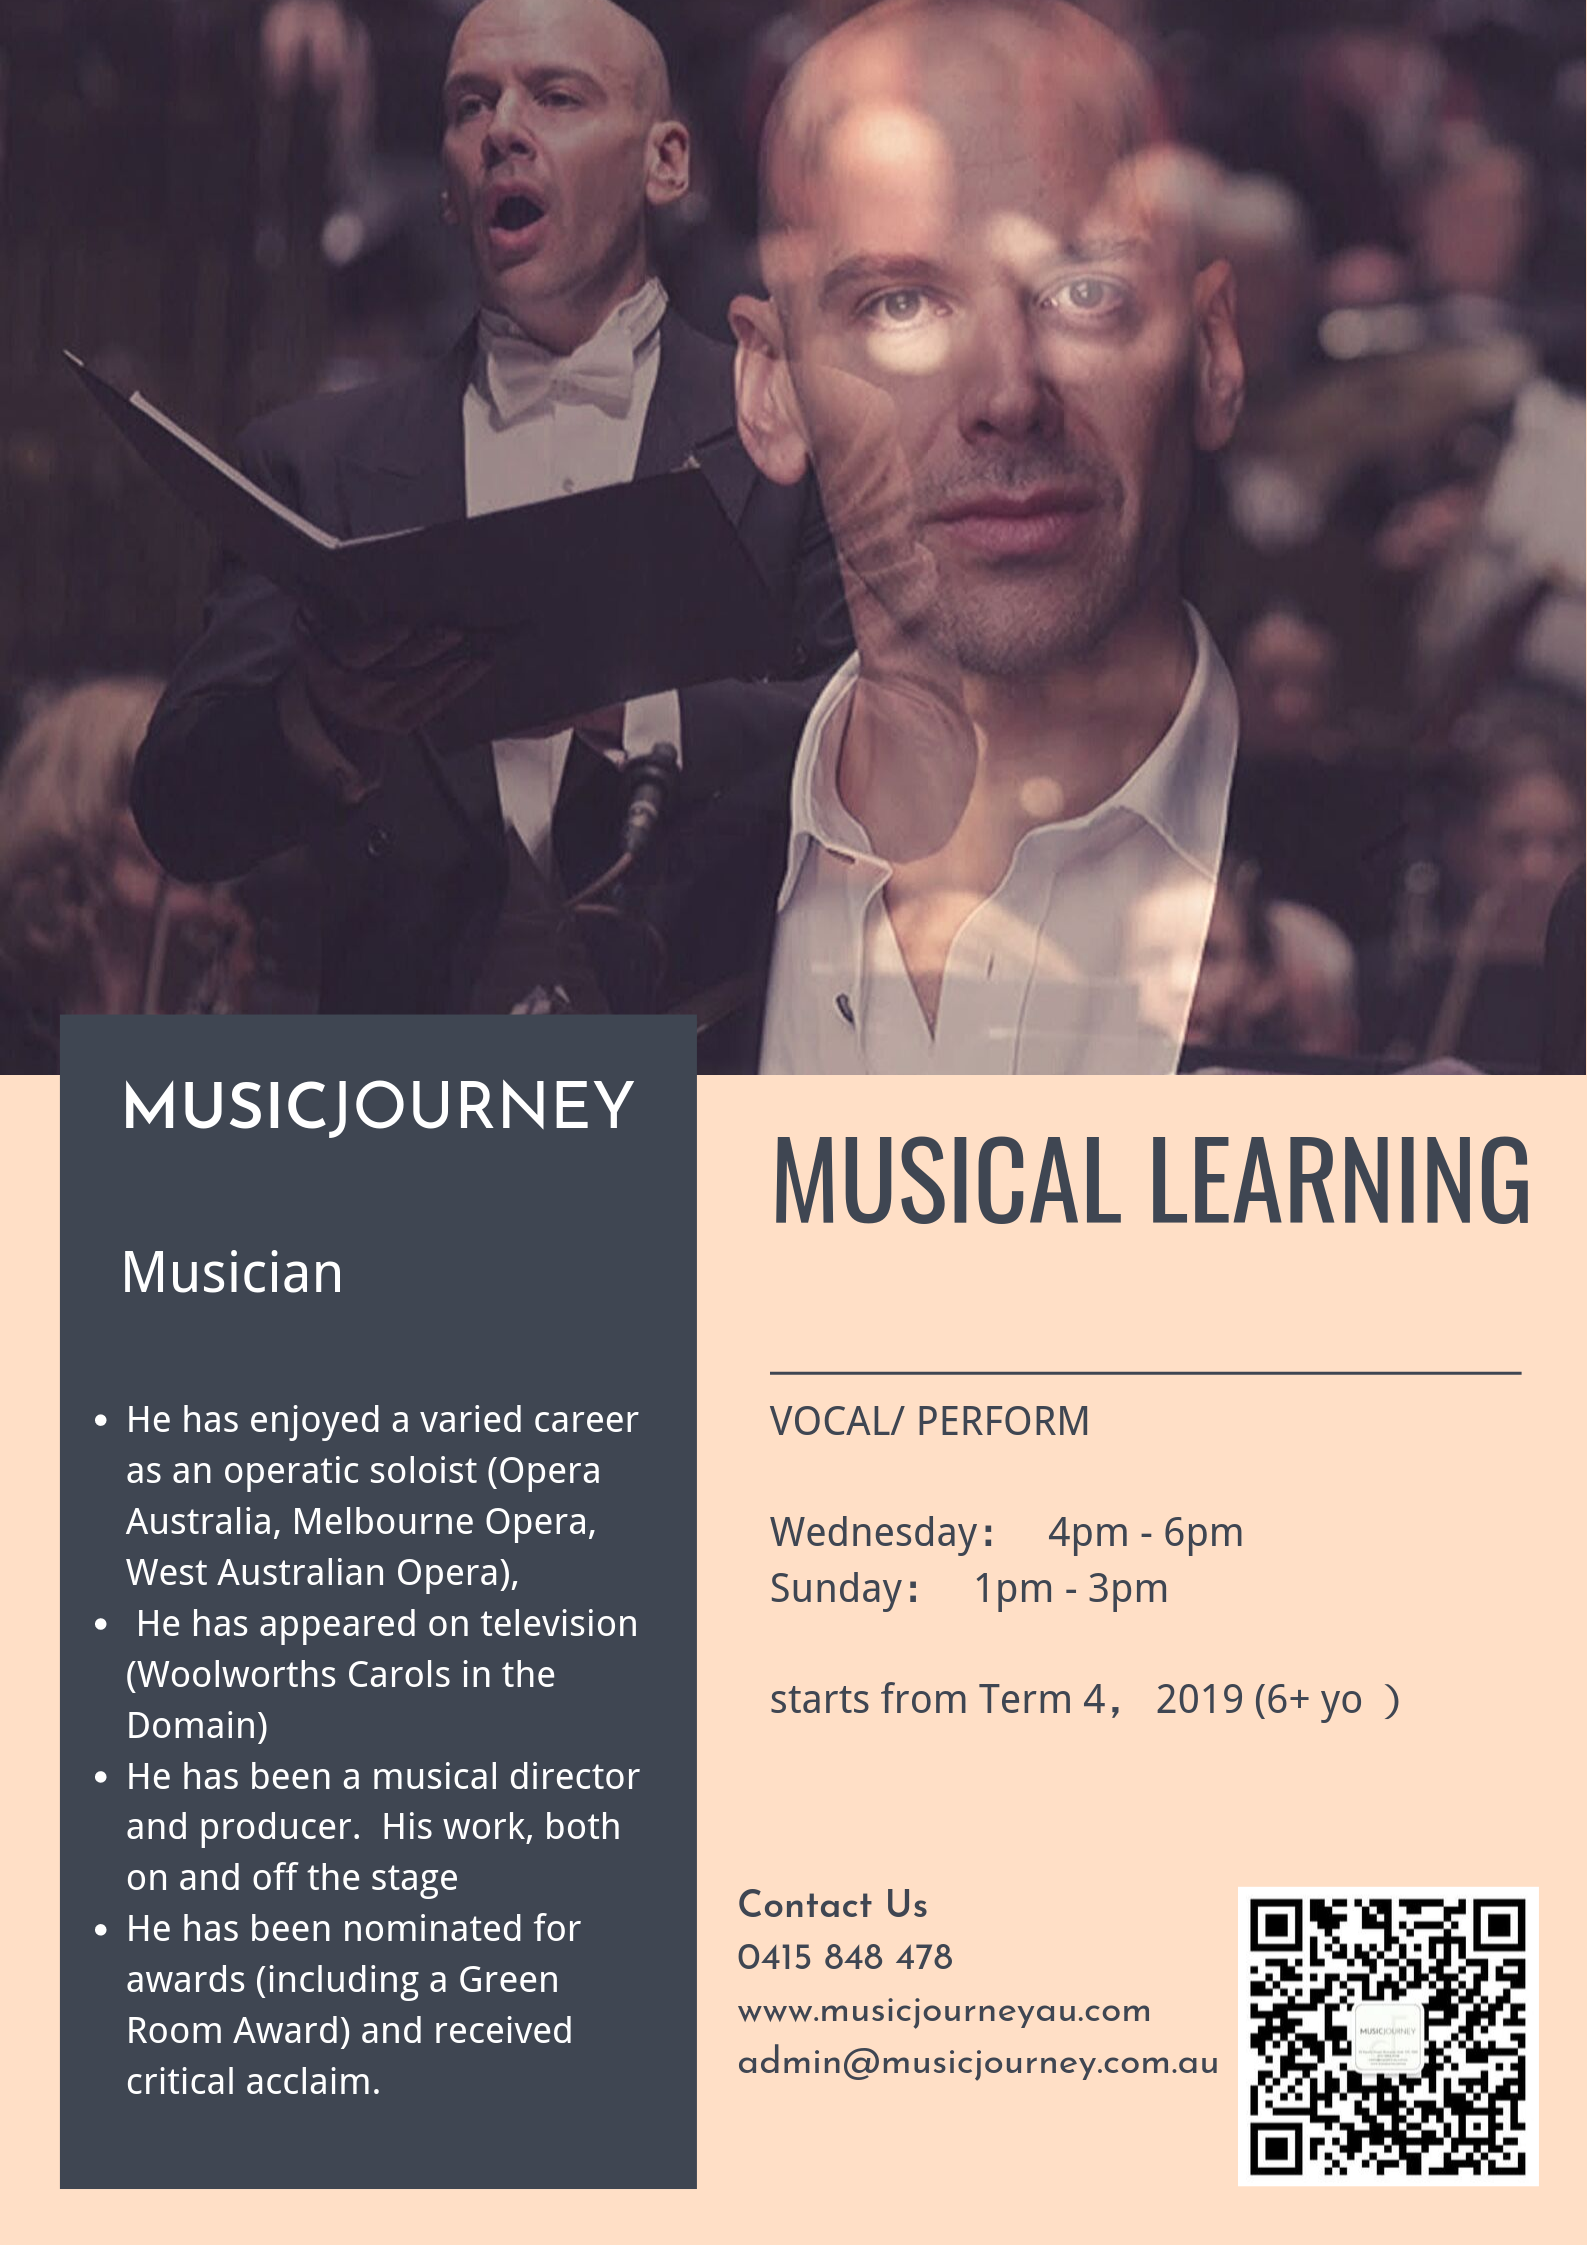 Learning Musical - The most professional musical course, bring you to the world of Musical